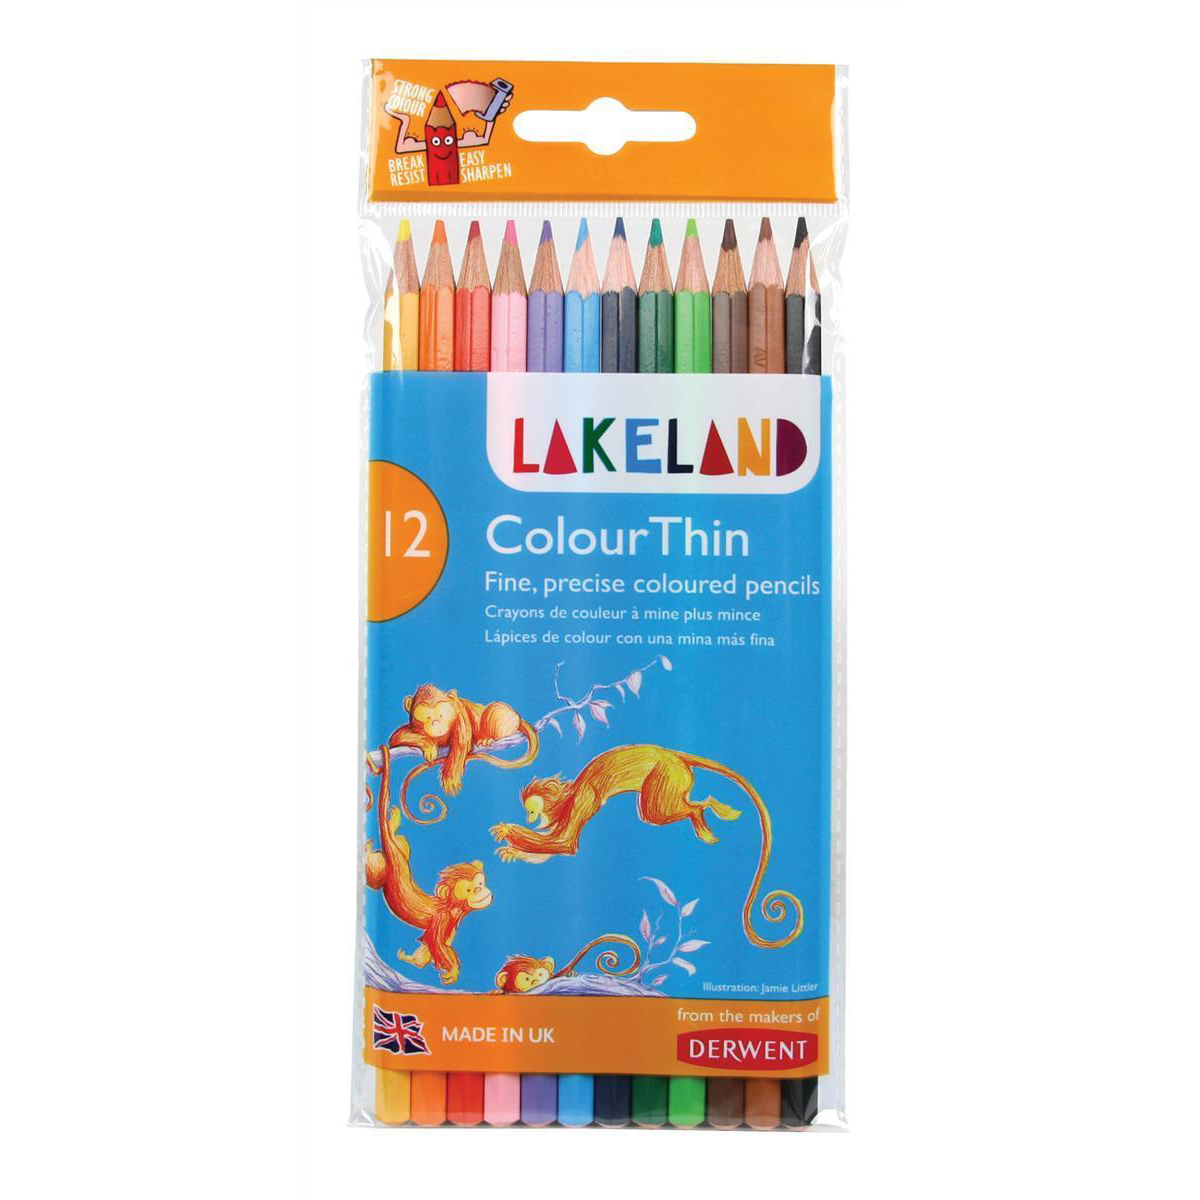 Pencils (Wood Case) Lakeland Colour Thin Colouring Pencils Hexagonal Barrel Hard-wearing Wallet Asstd Ref 0700077 Pack 12